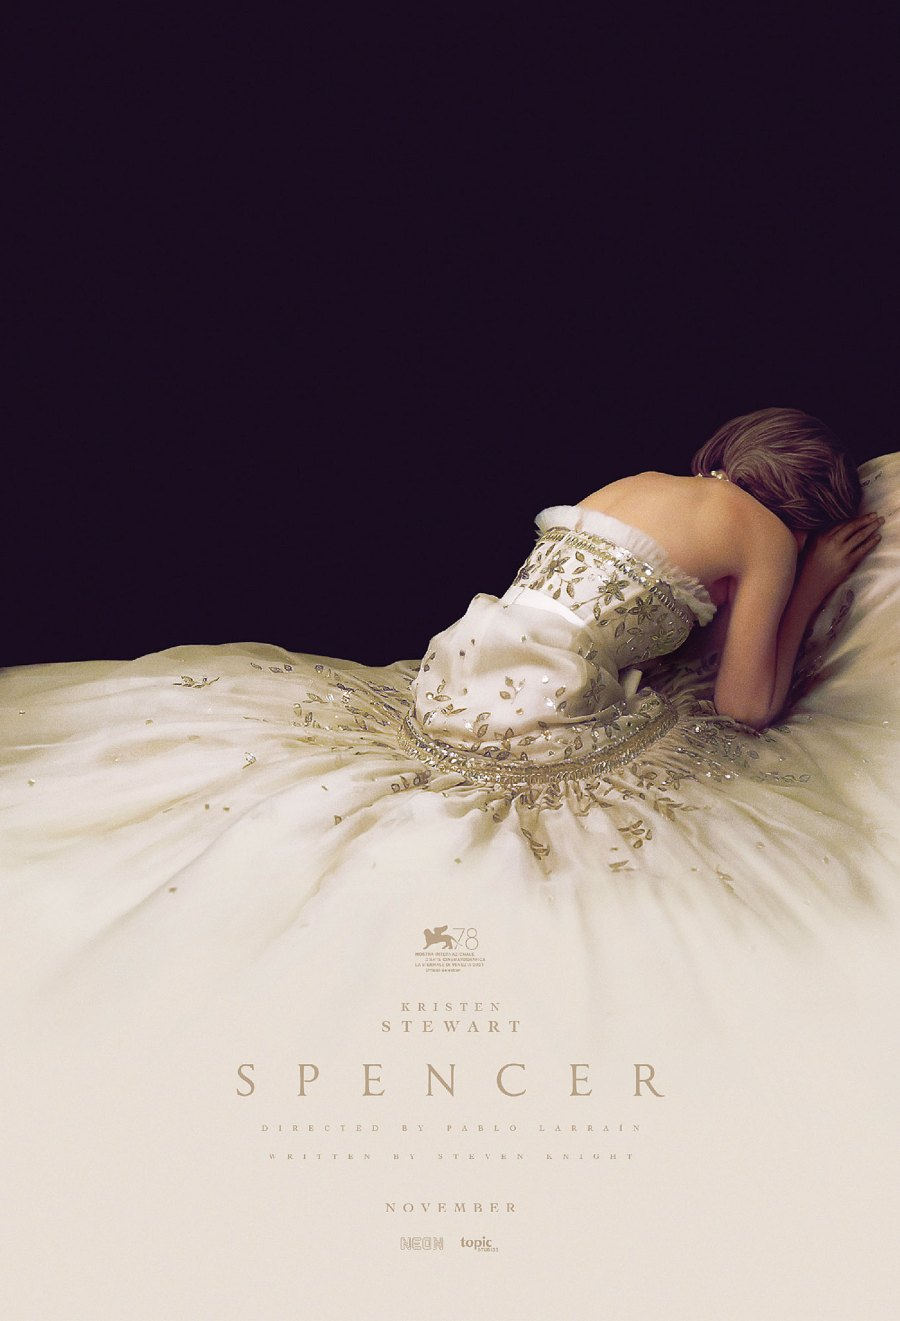 A New Poster Everything Know About Kristen Stewart Spencer Movie